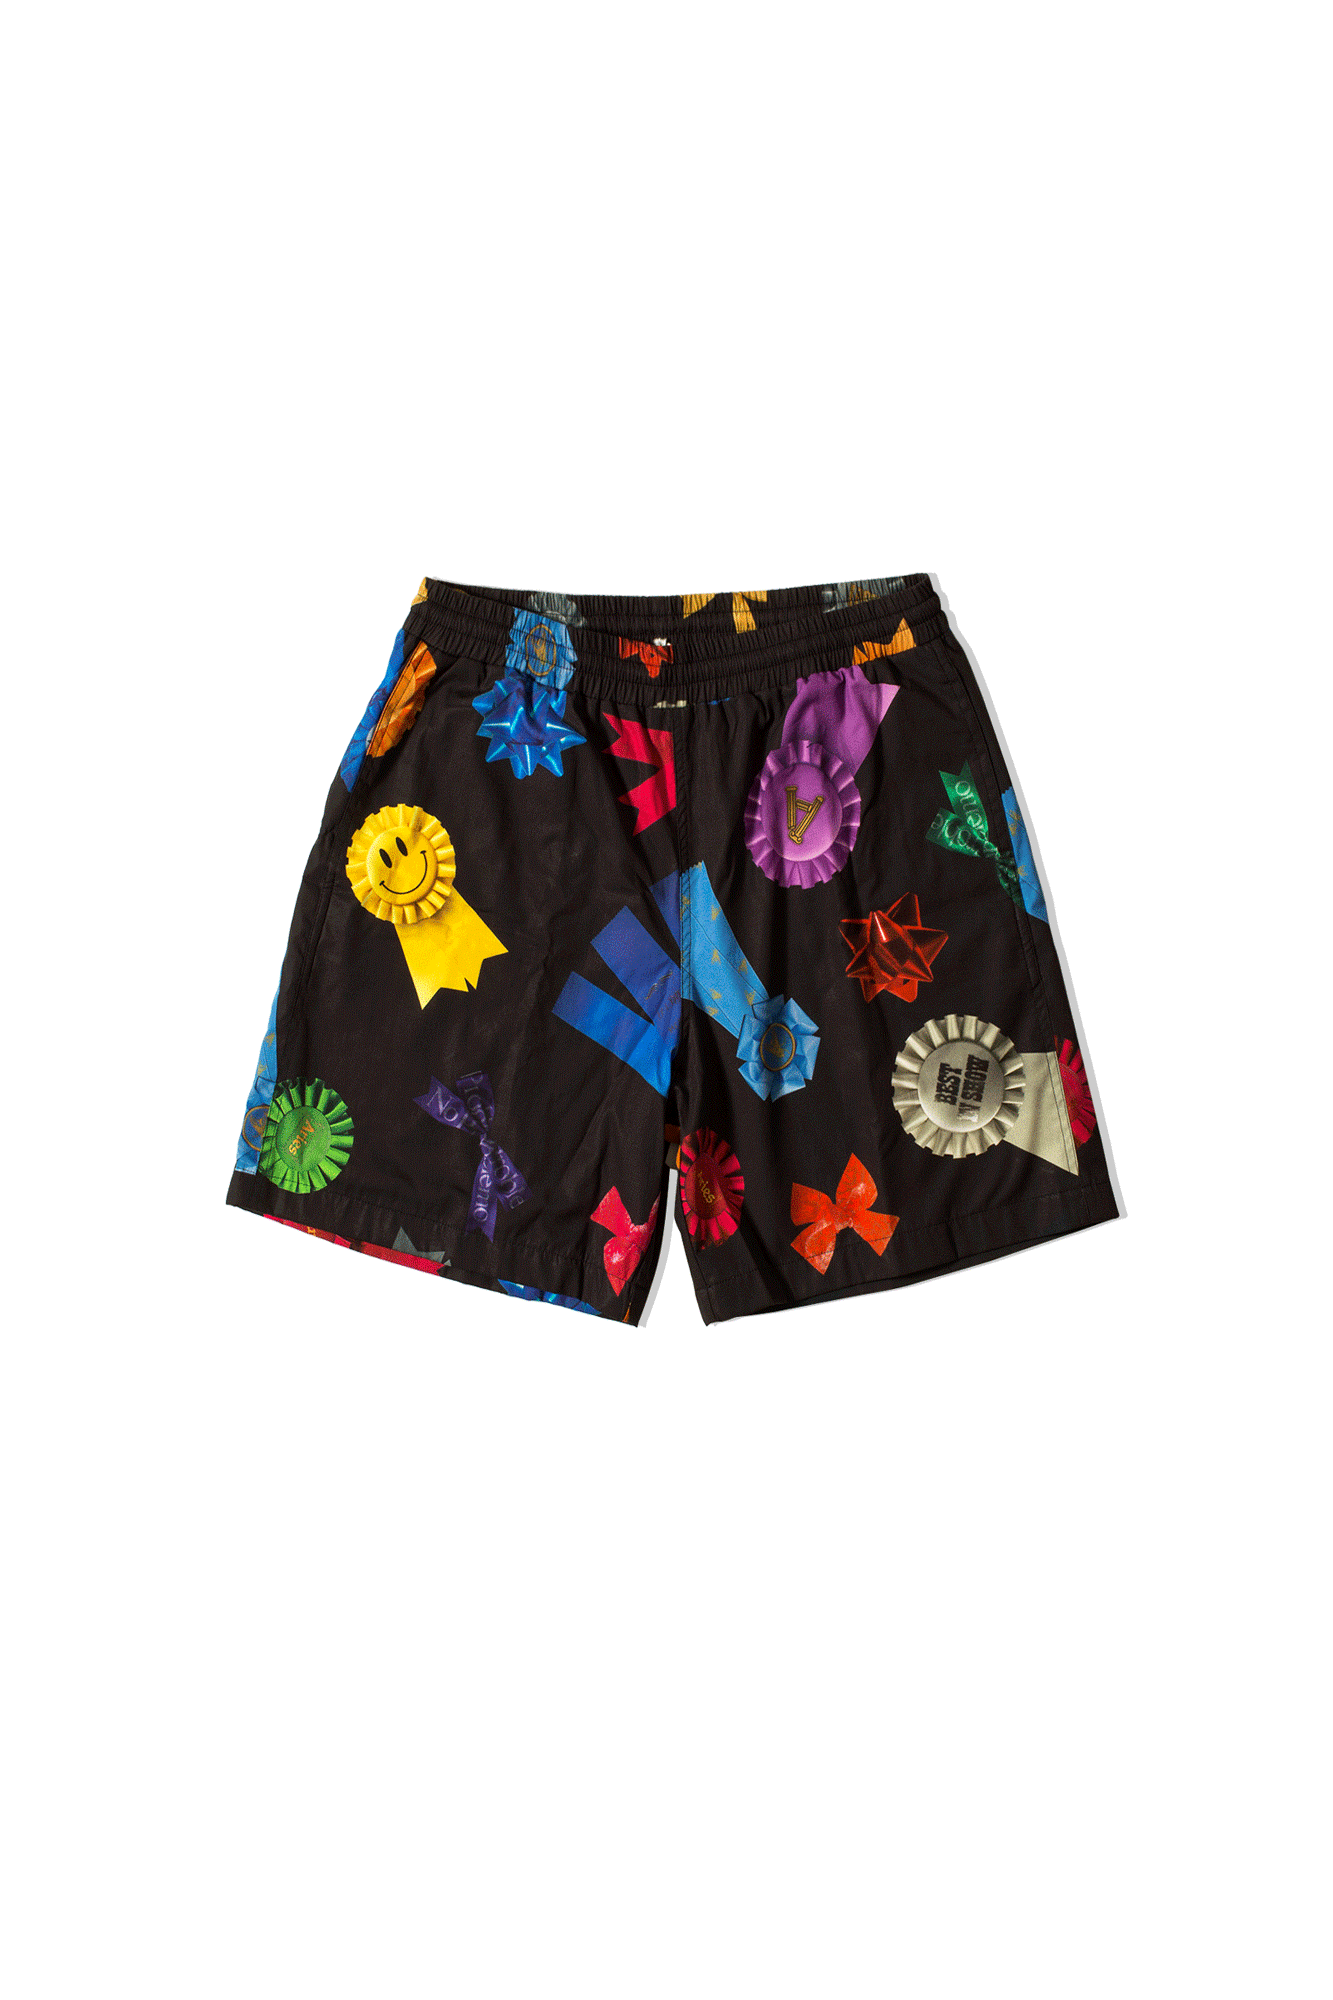 Bows Boards Short Black